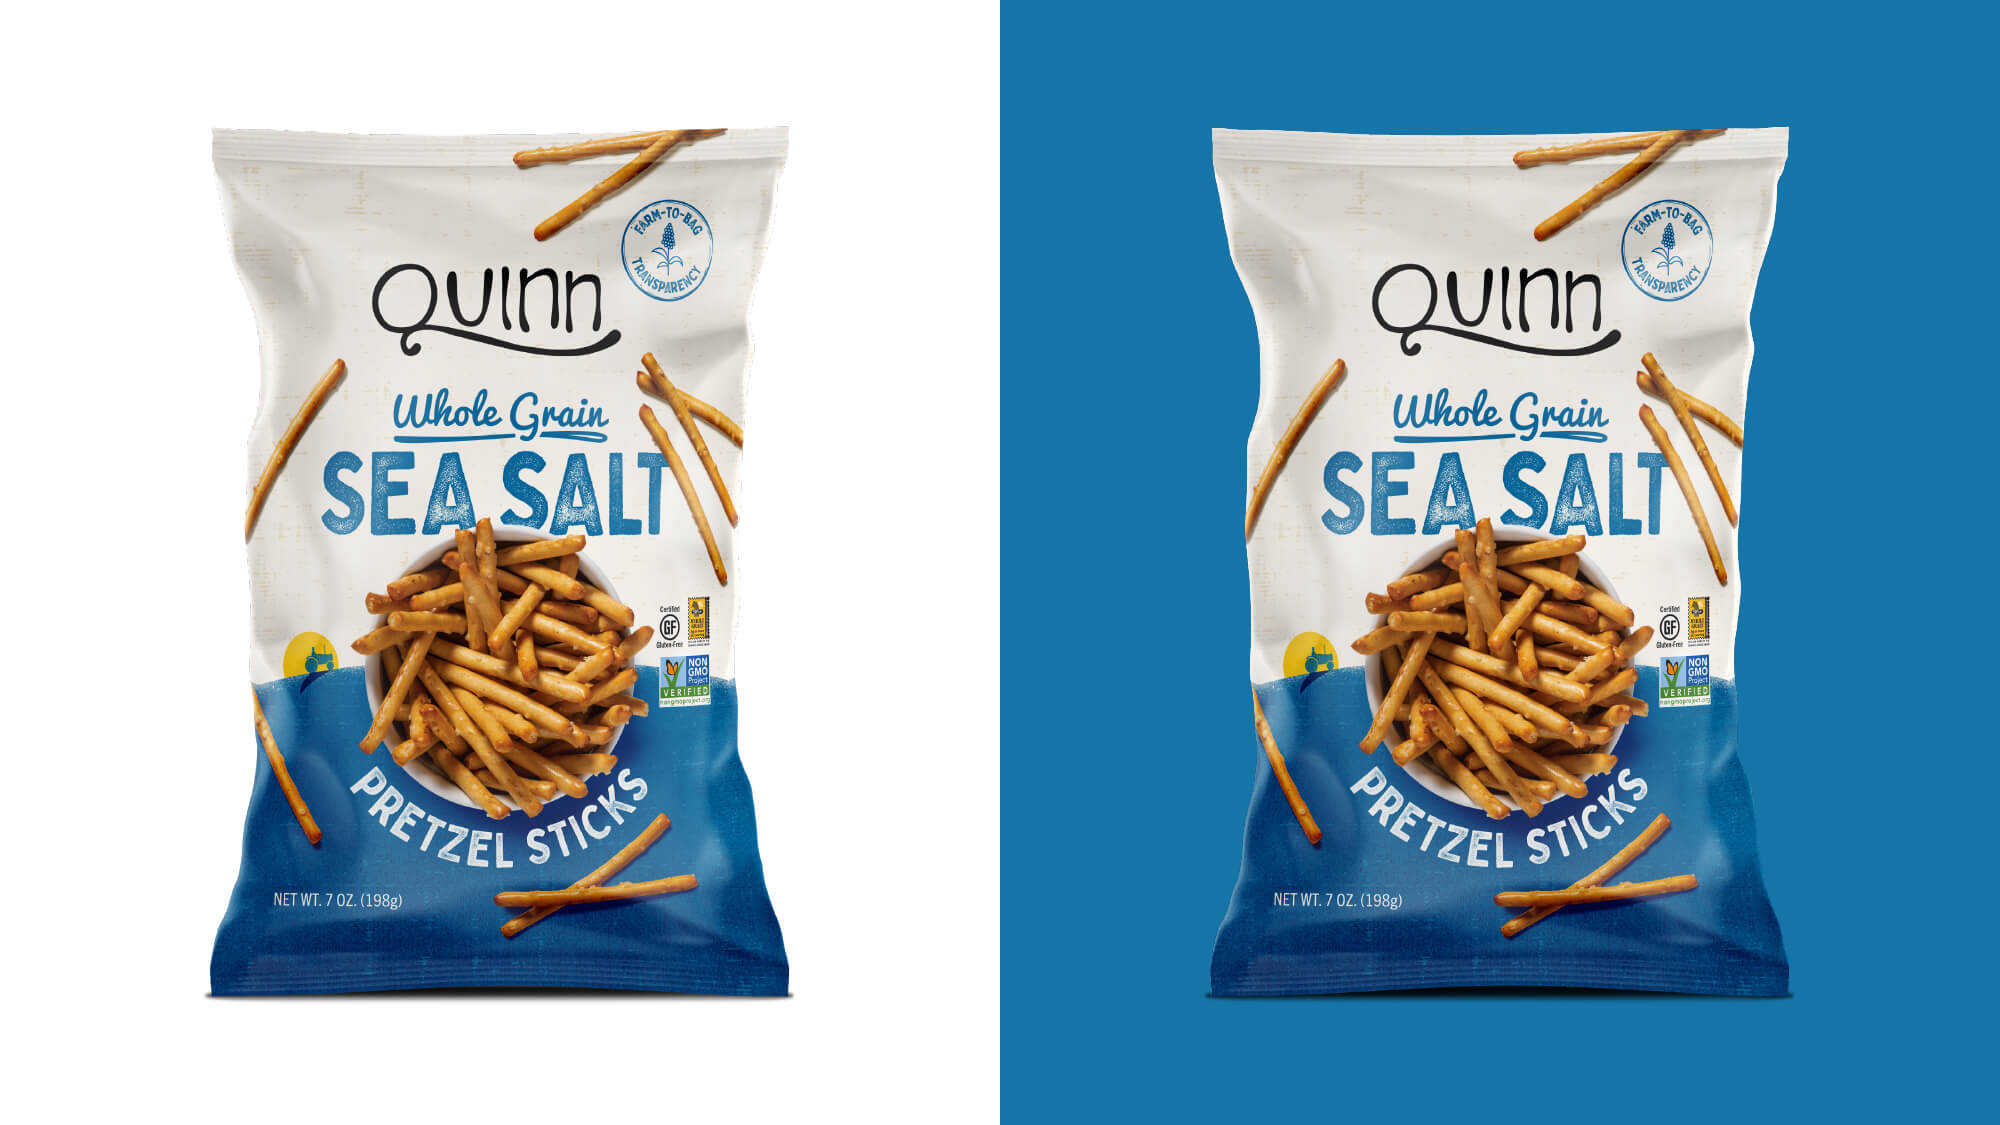 Quinn Pretzels Packaging - Whole Grain Sea Salt Pretzel Sticks